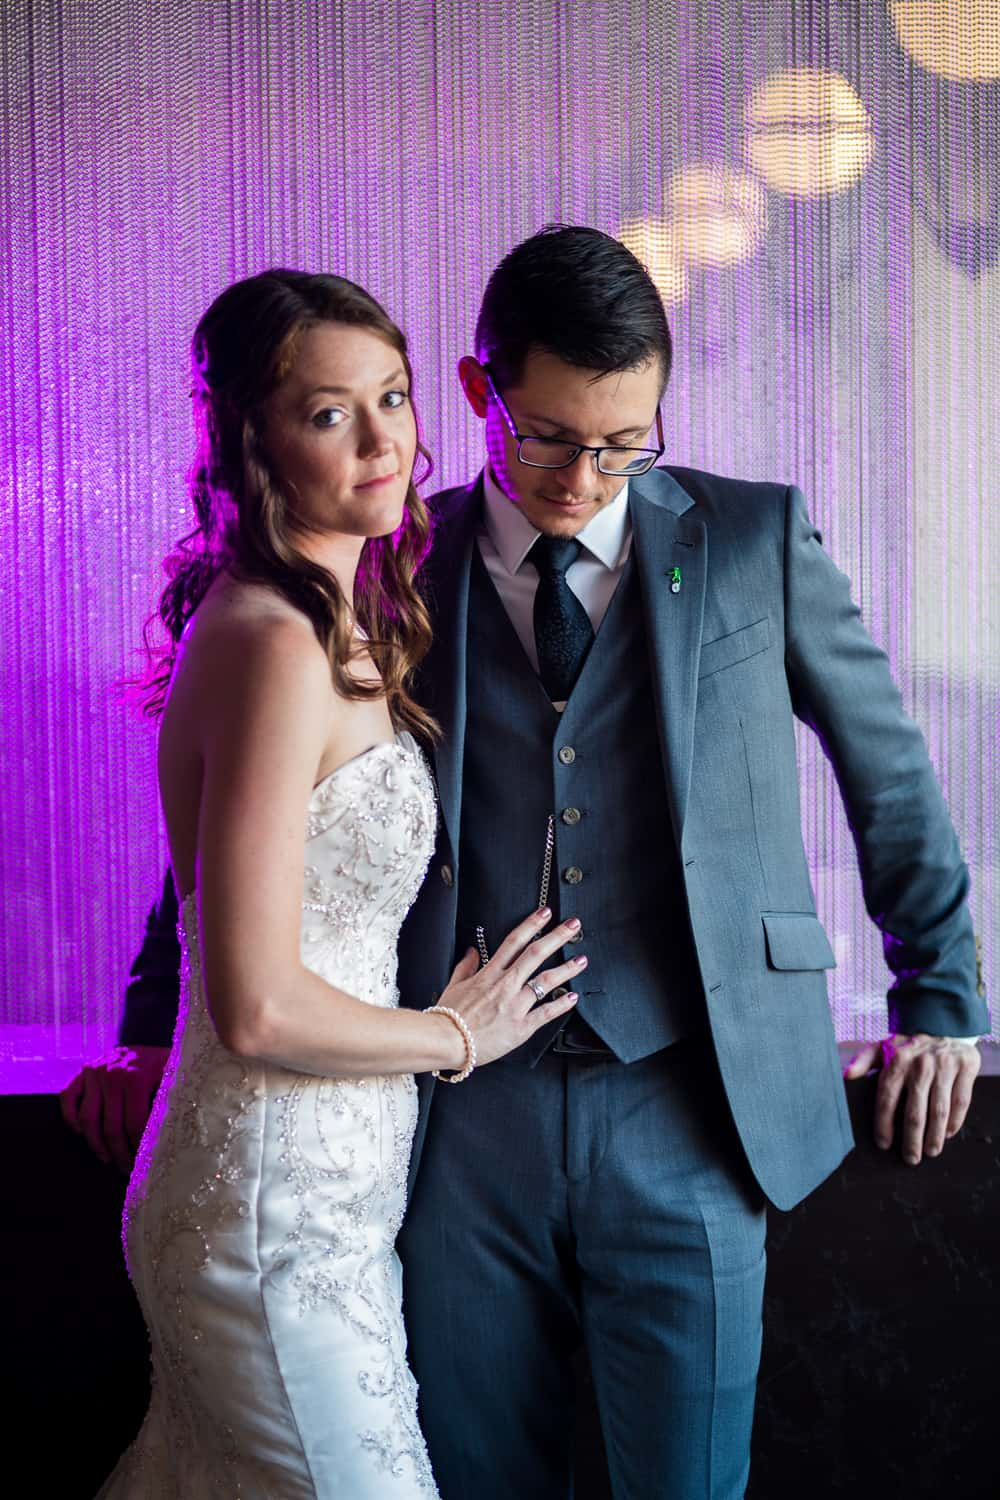 bride and groom stand infront of a curtain of metal beads which is colored purple with a flash.